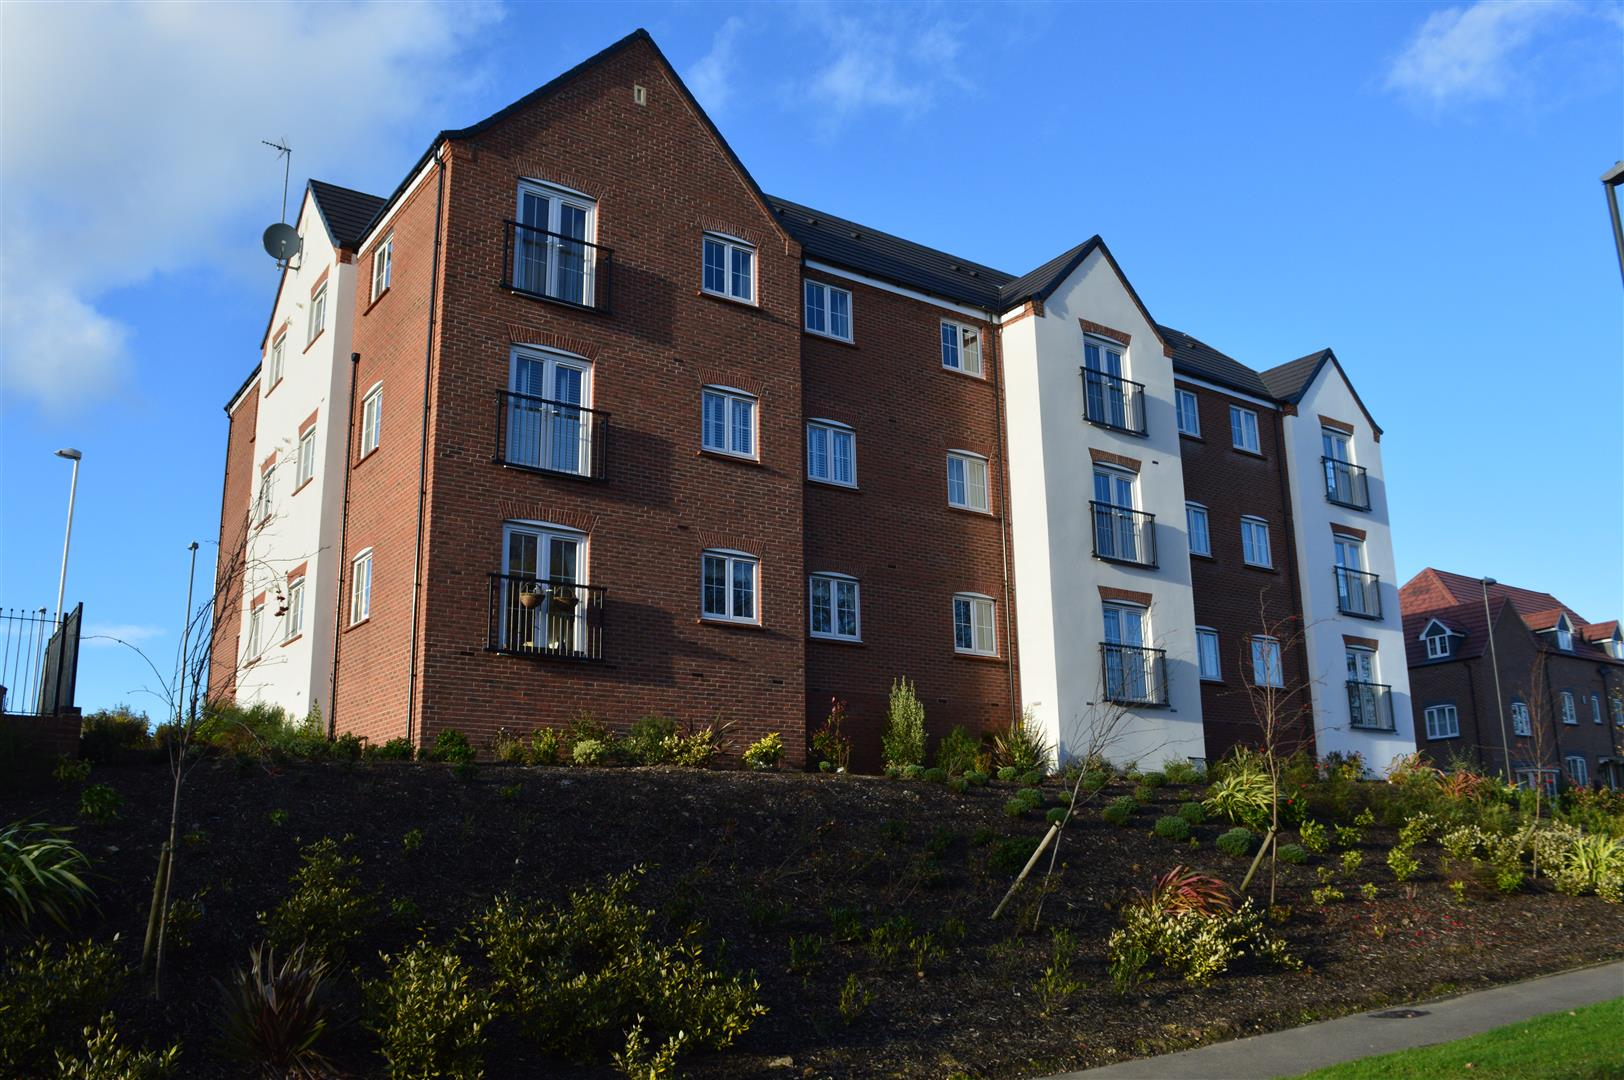 2 Bedroom Apartment For Sale In Denby